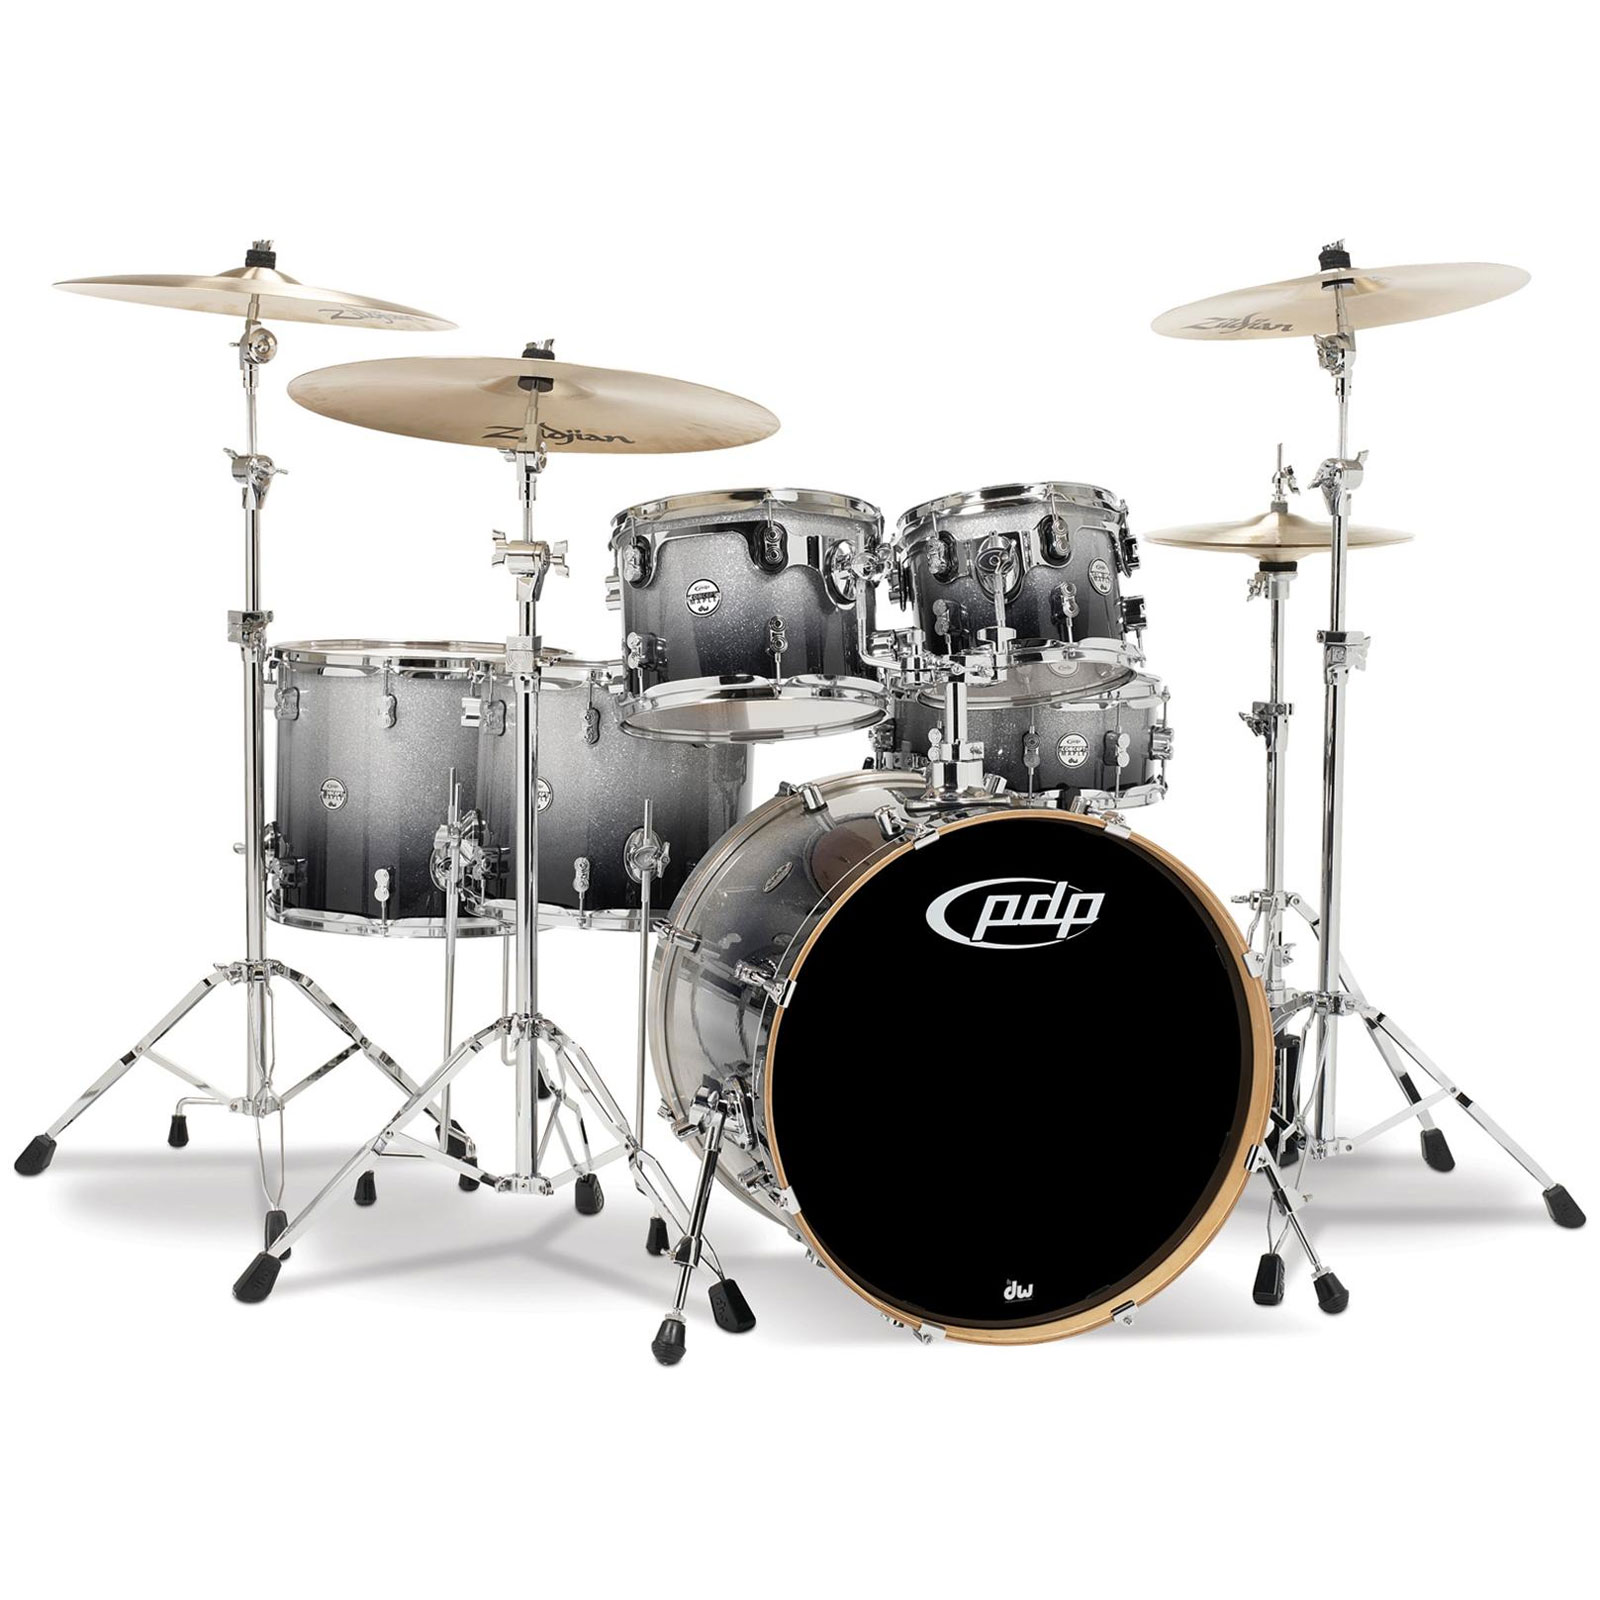 "PDP CM6 Concept Maple 6-Piece Drum Set Shell Pack (22"" Bass, 10/12/14/16"" Toms, 14"" Snare)"